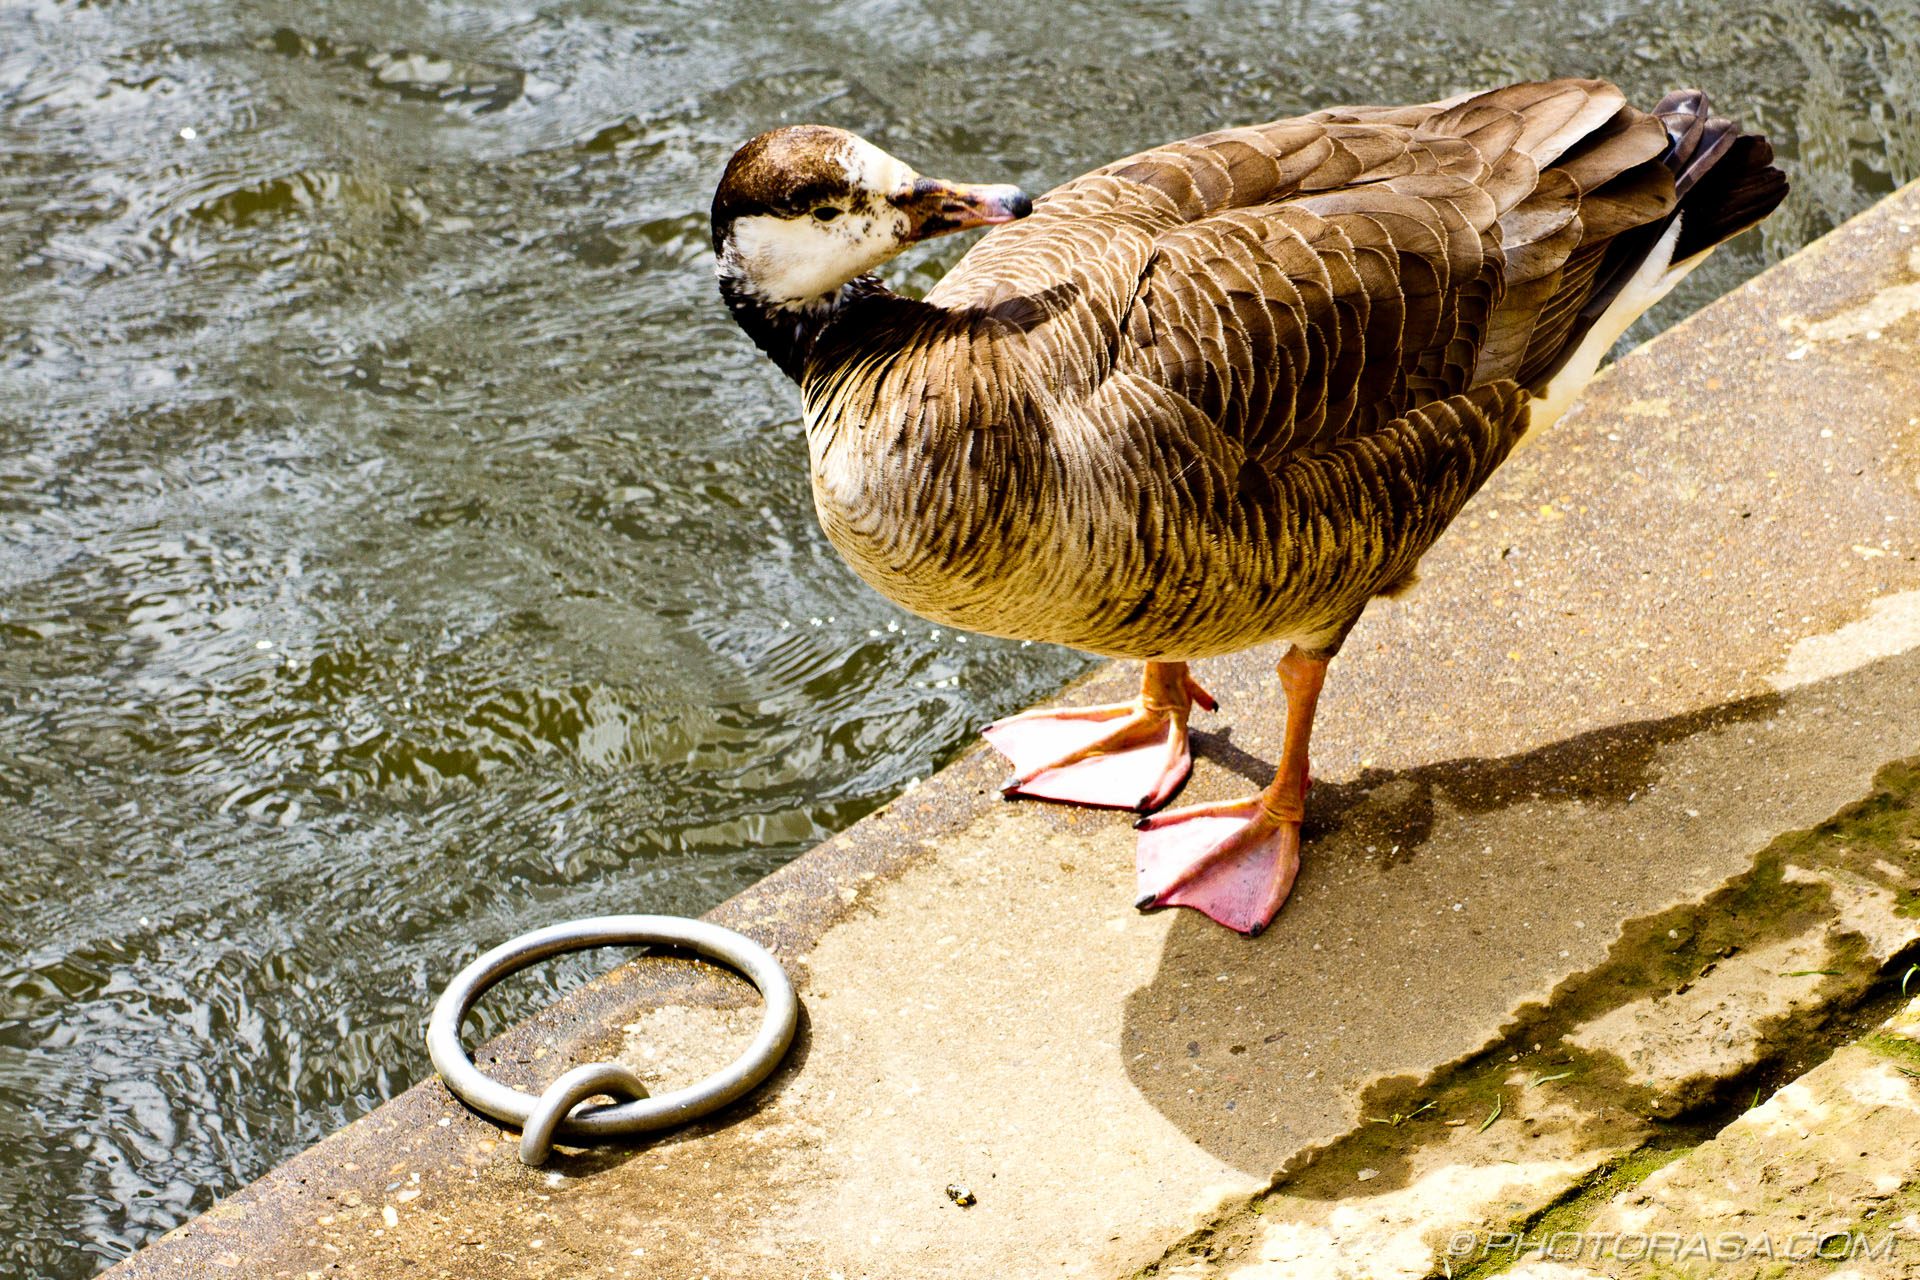 http://photorasa.com/gaggle-geese/canadian-goose-by-mooring-ring/